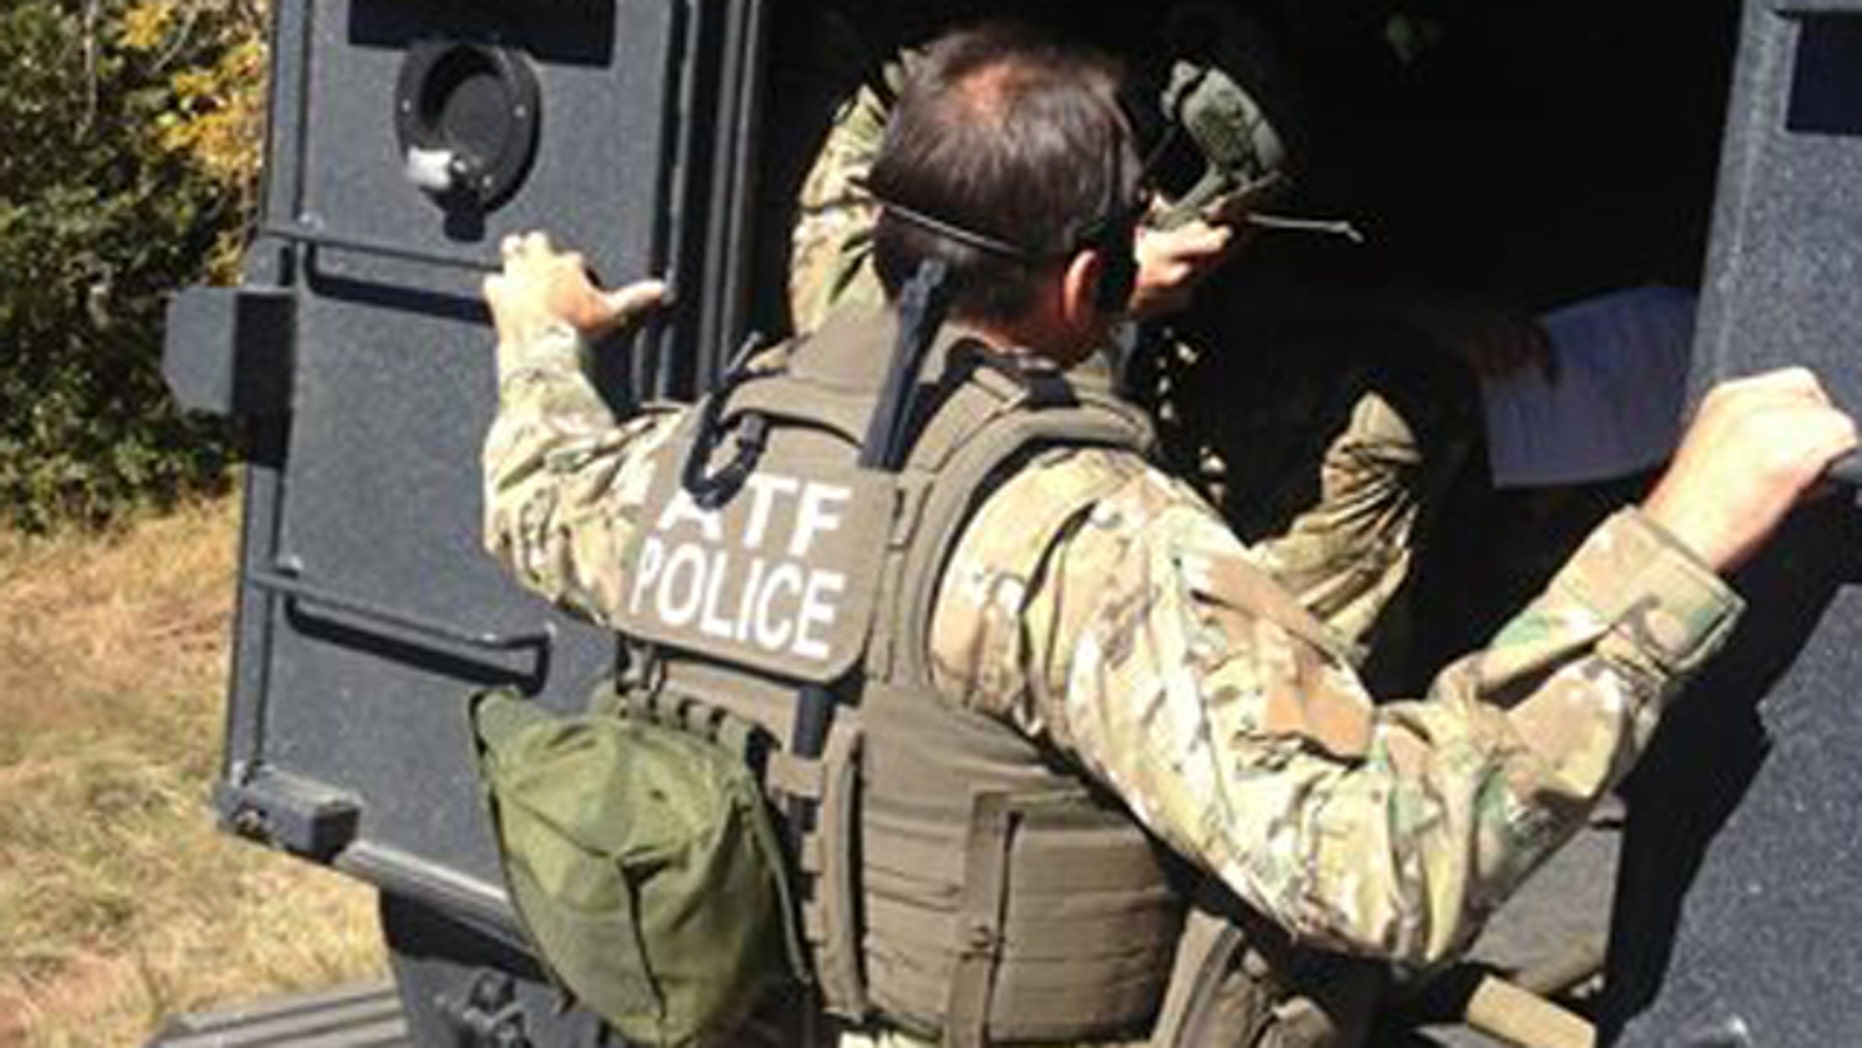 Oct. 14, 2013: Agents executing a search warrant at the home of Kirby Kehoe near Ash Fork, Ariz.